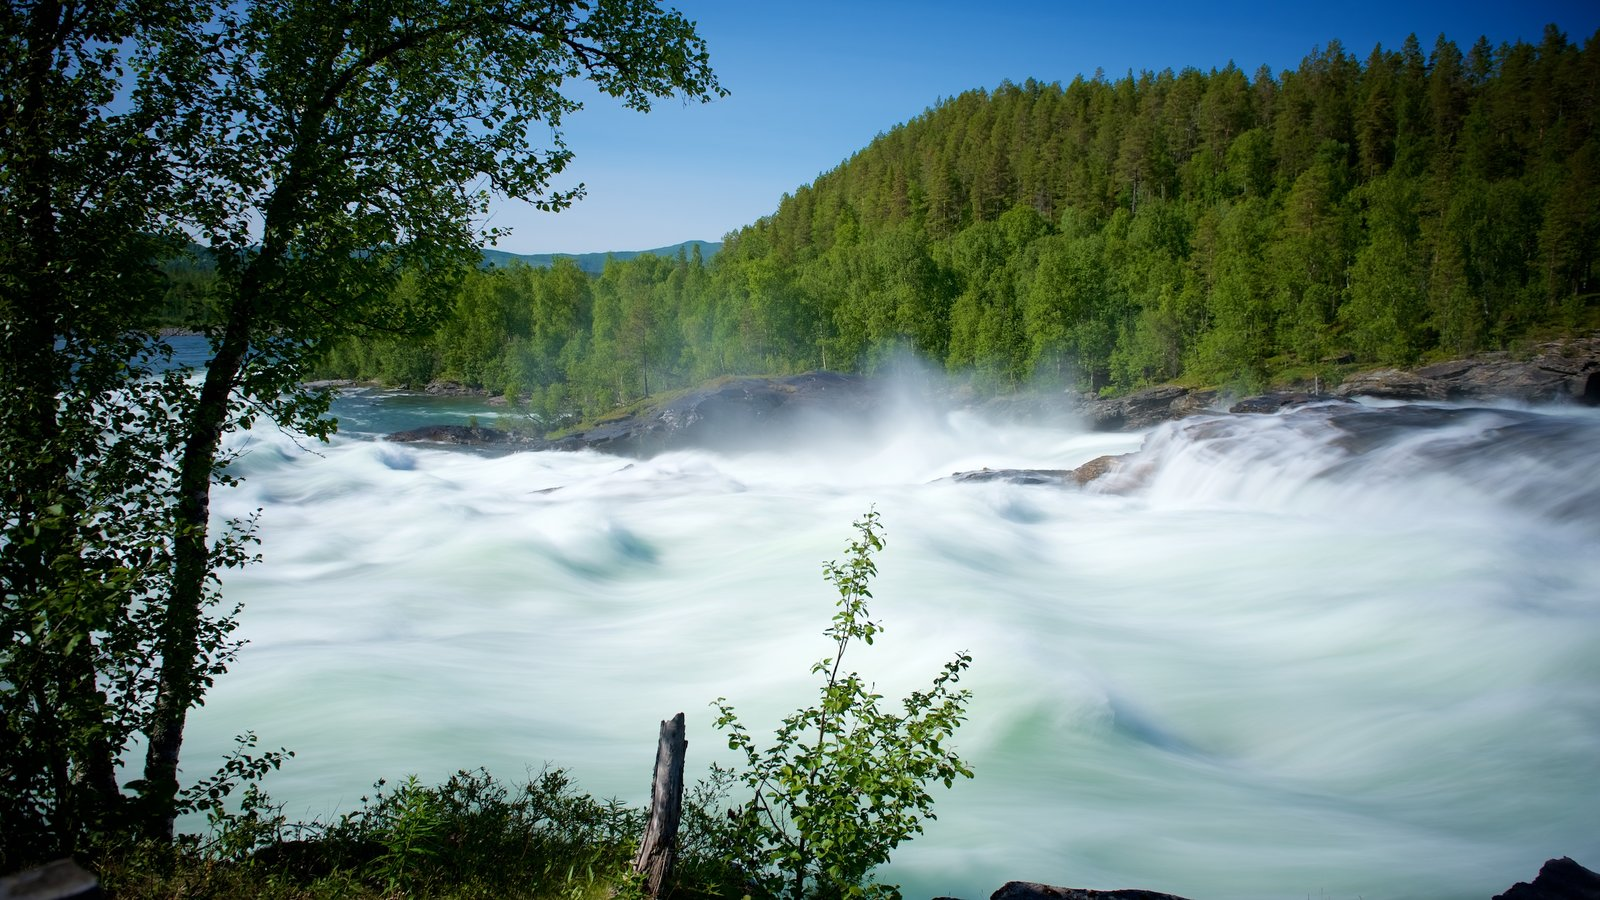 Maalselvfossen Waterfall which includes forests and rapids